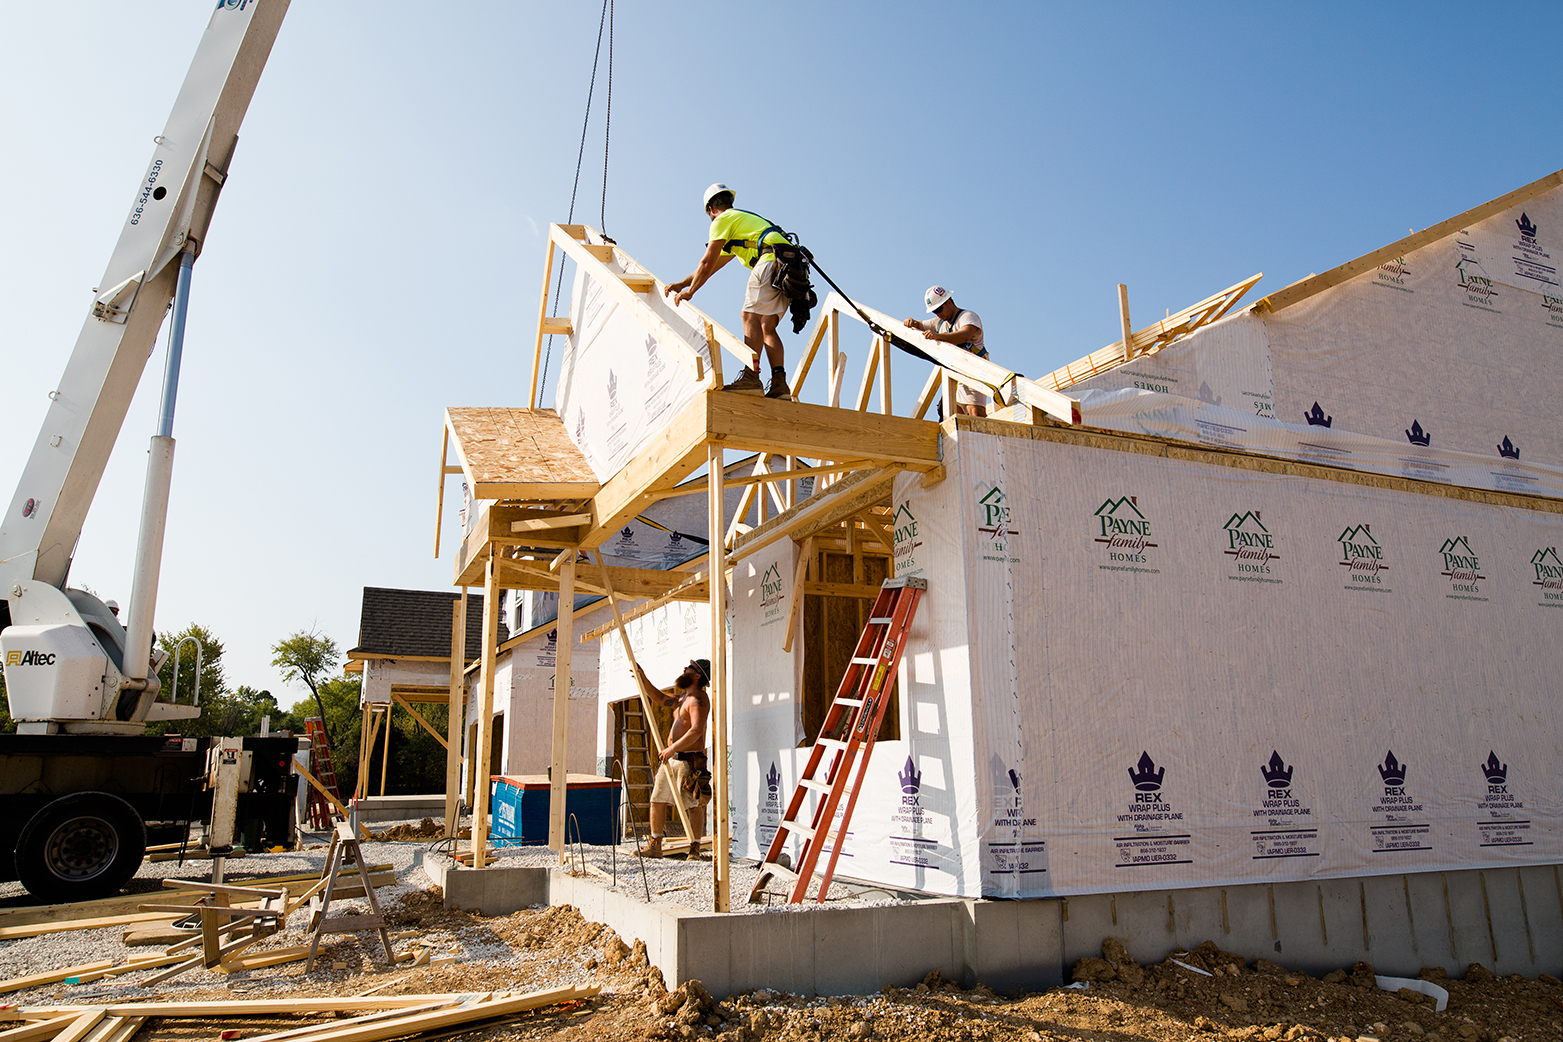 Homebuilding Solutions Press Release by MiTek - View of a wooden truss being installed in a residential, single-family home